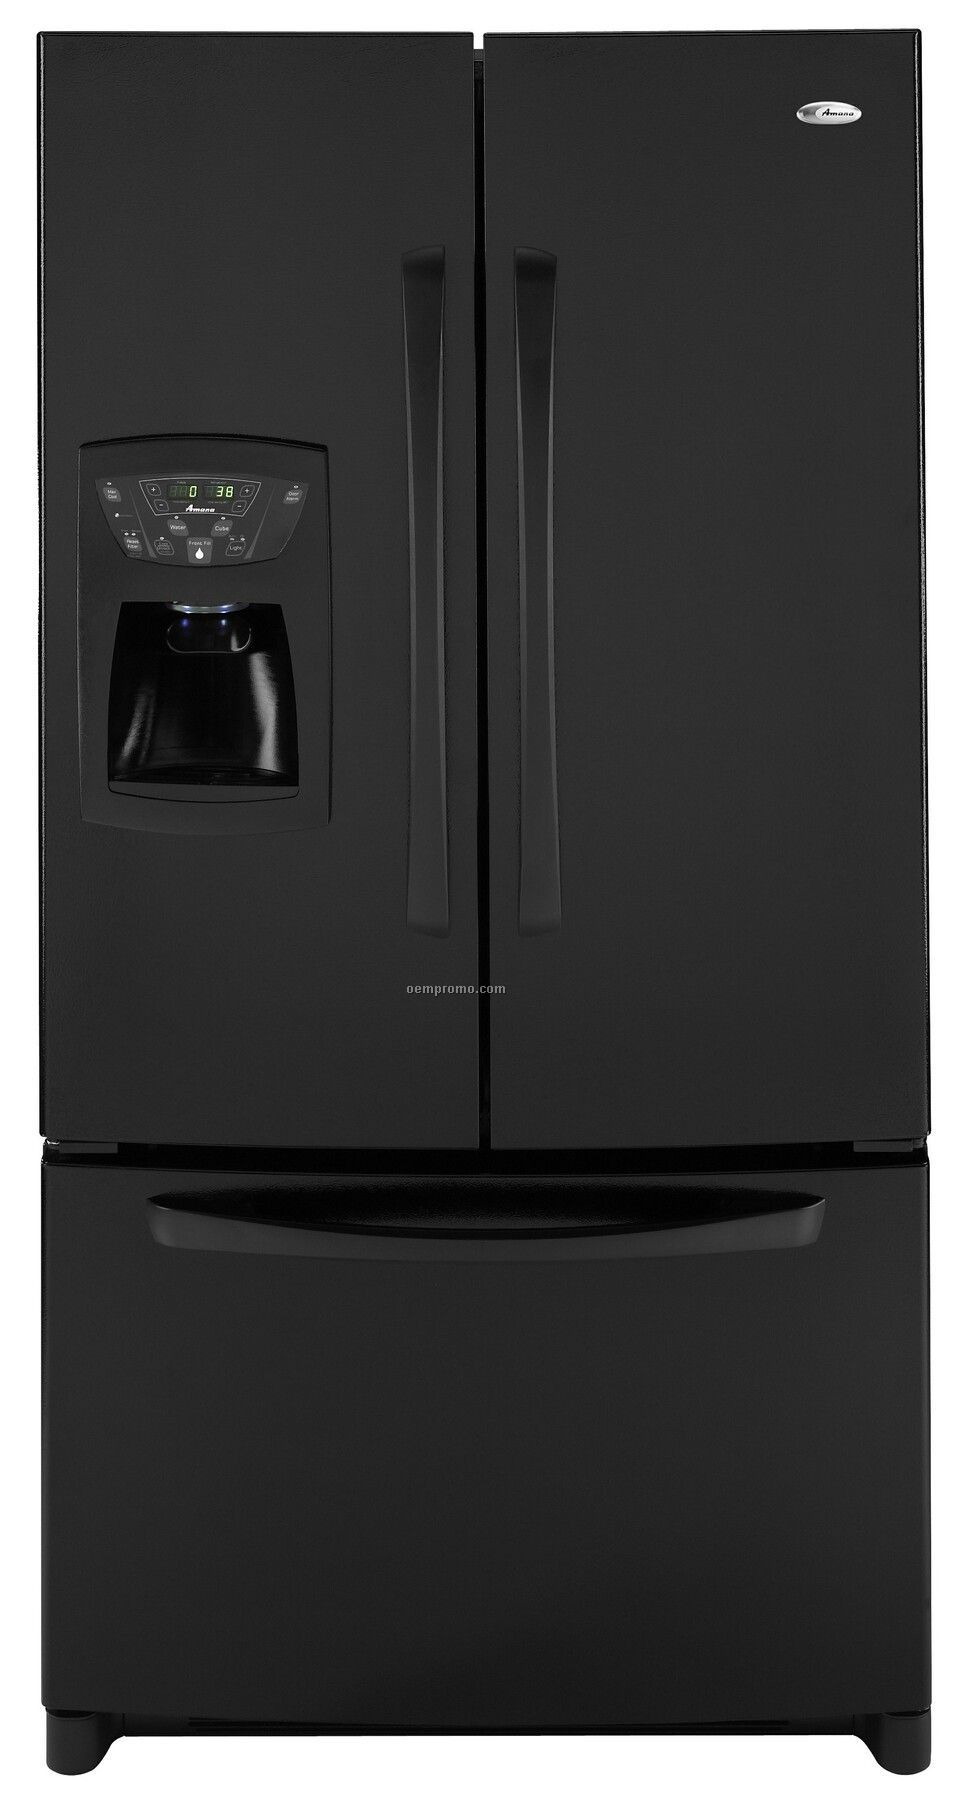 amana 25 cubic foot french door refrigerator black china wholesale amana 25 cubic foot french. Black Bedroom Furniture Sets. Home Design Ideas